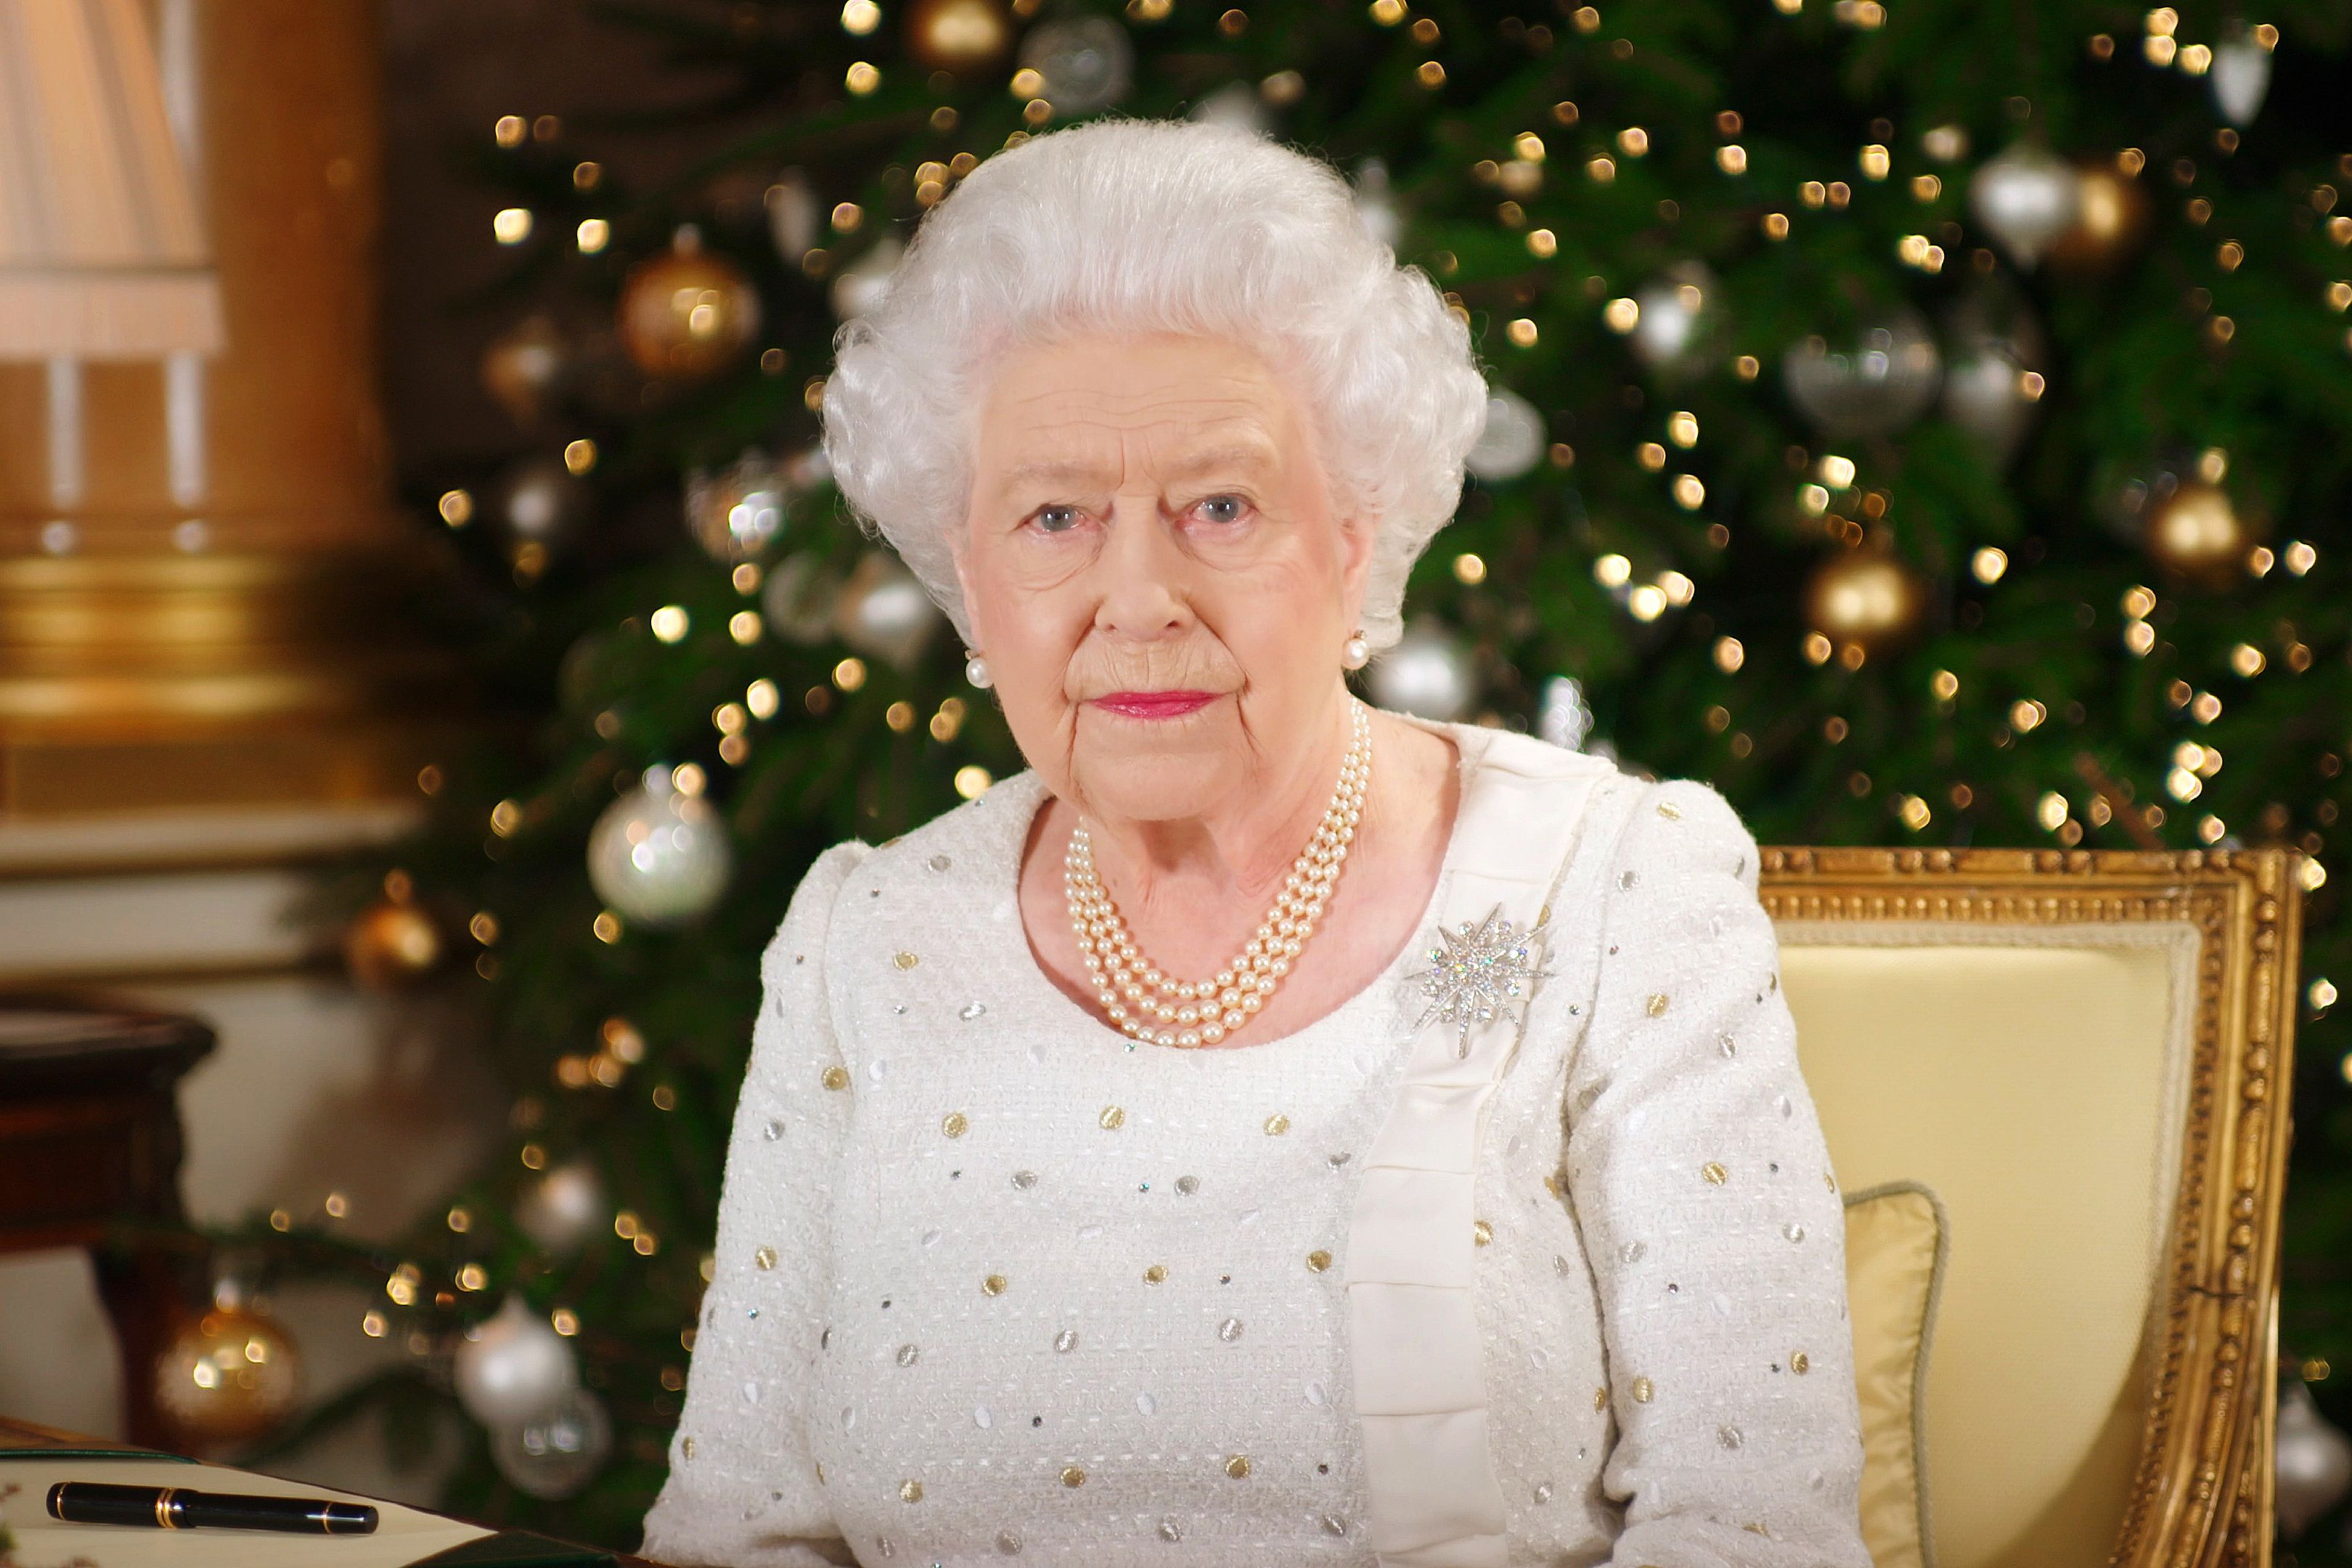 Why Queen Elizabeth Never Opens Presents on Christmas Day